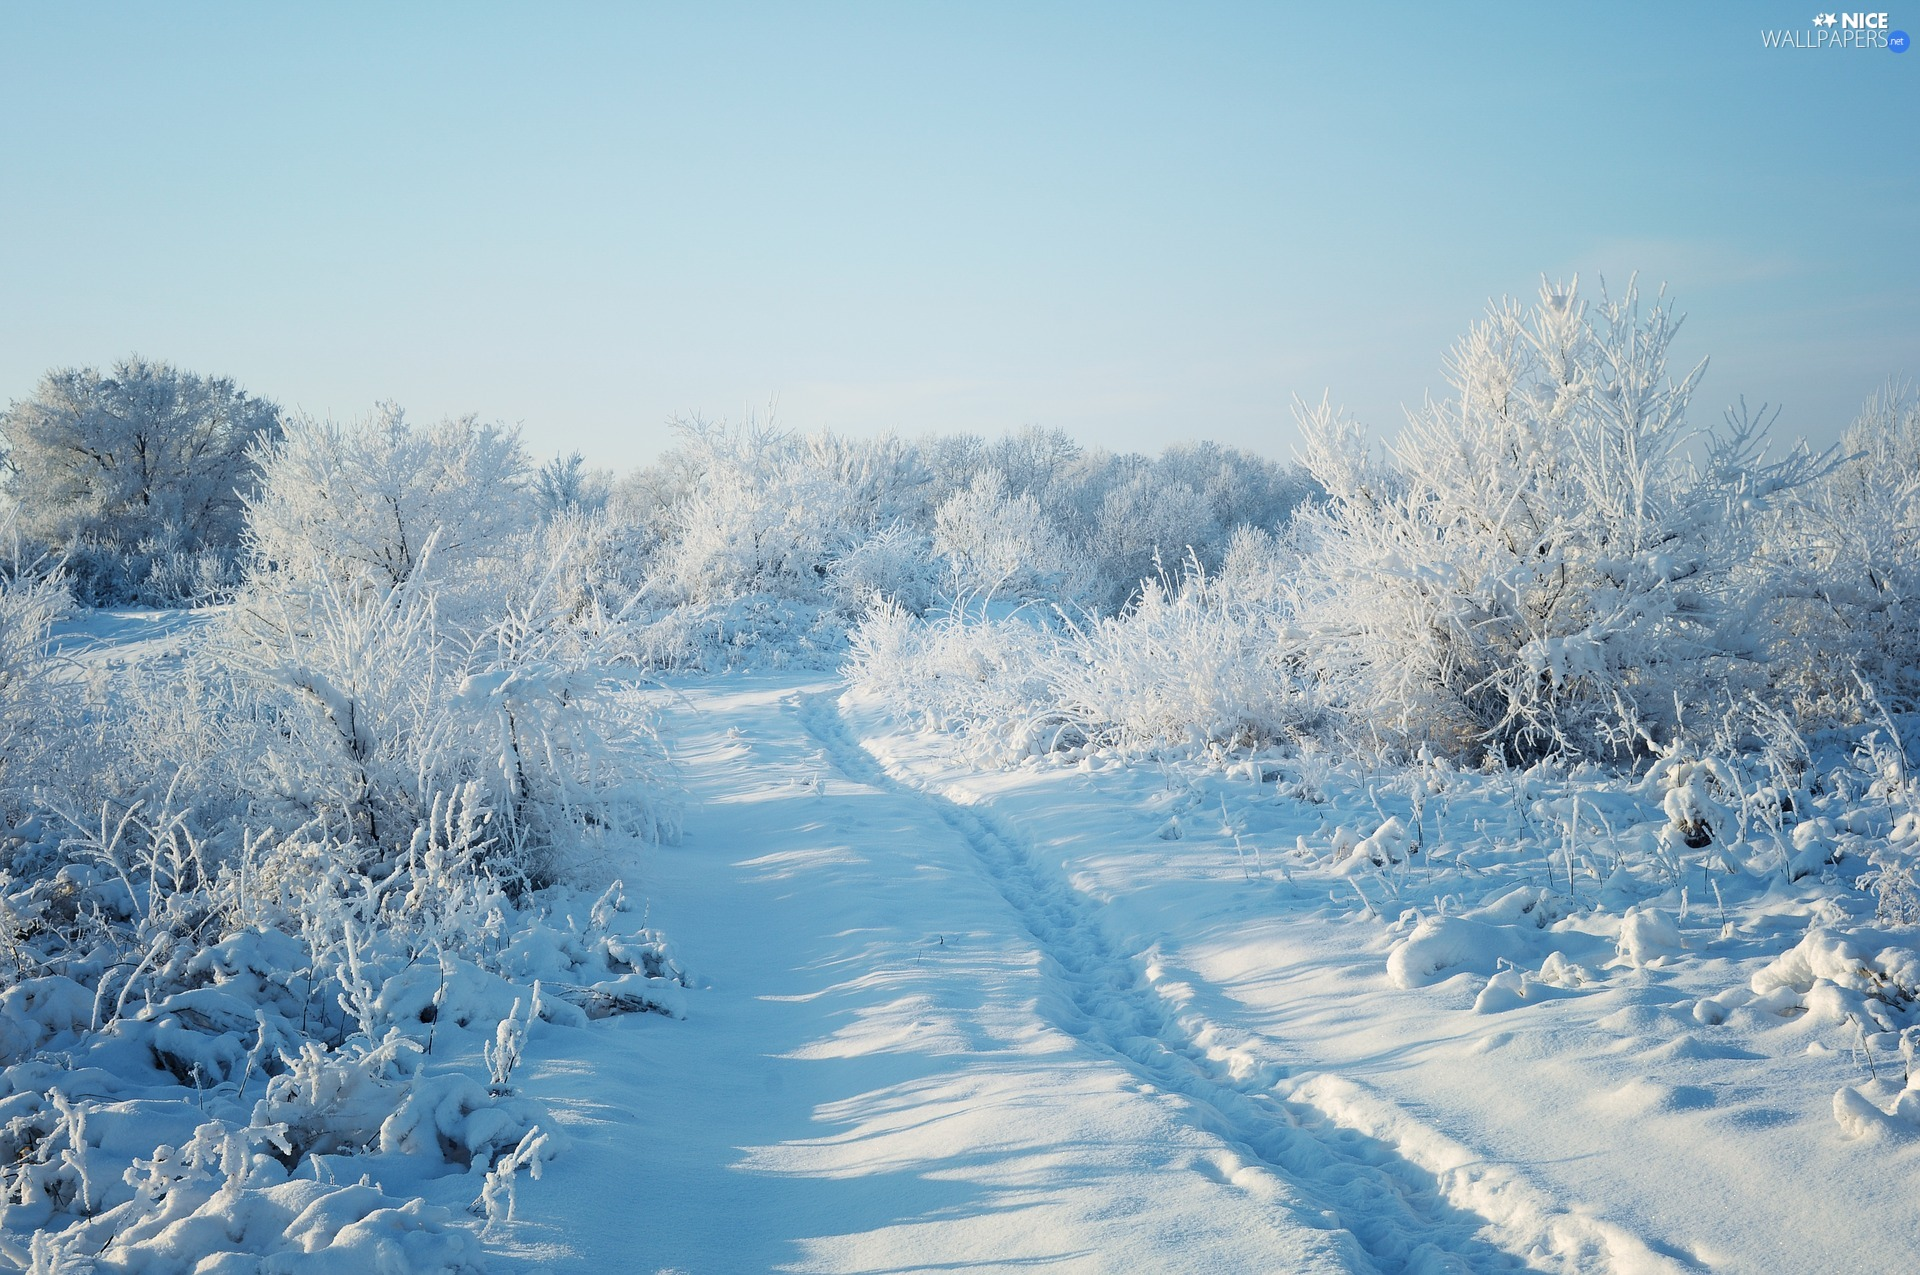 forest, snow, viewes, Path, winter, trees, Bush